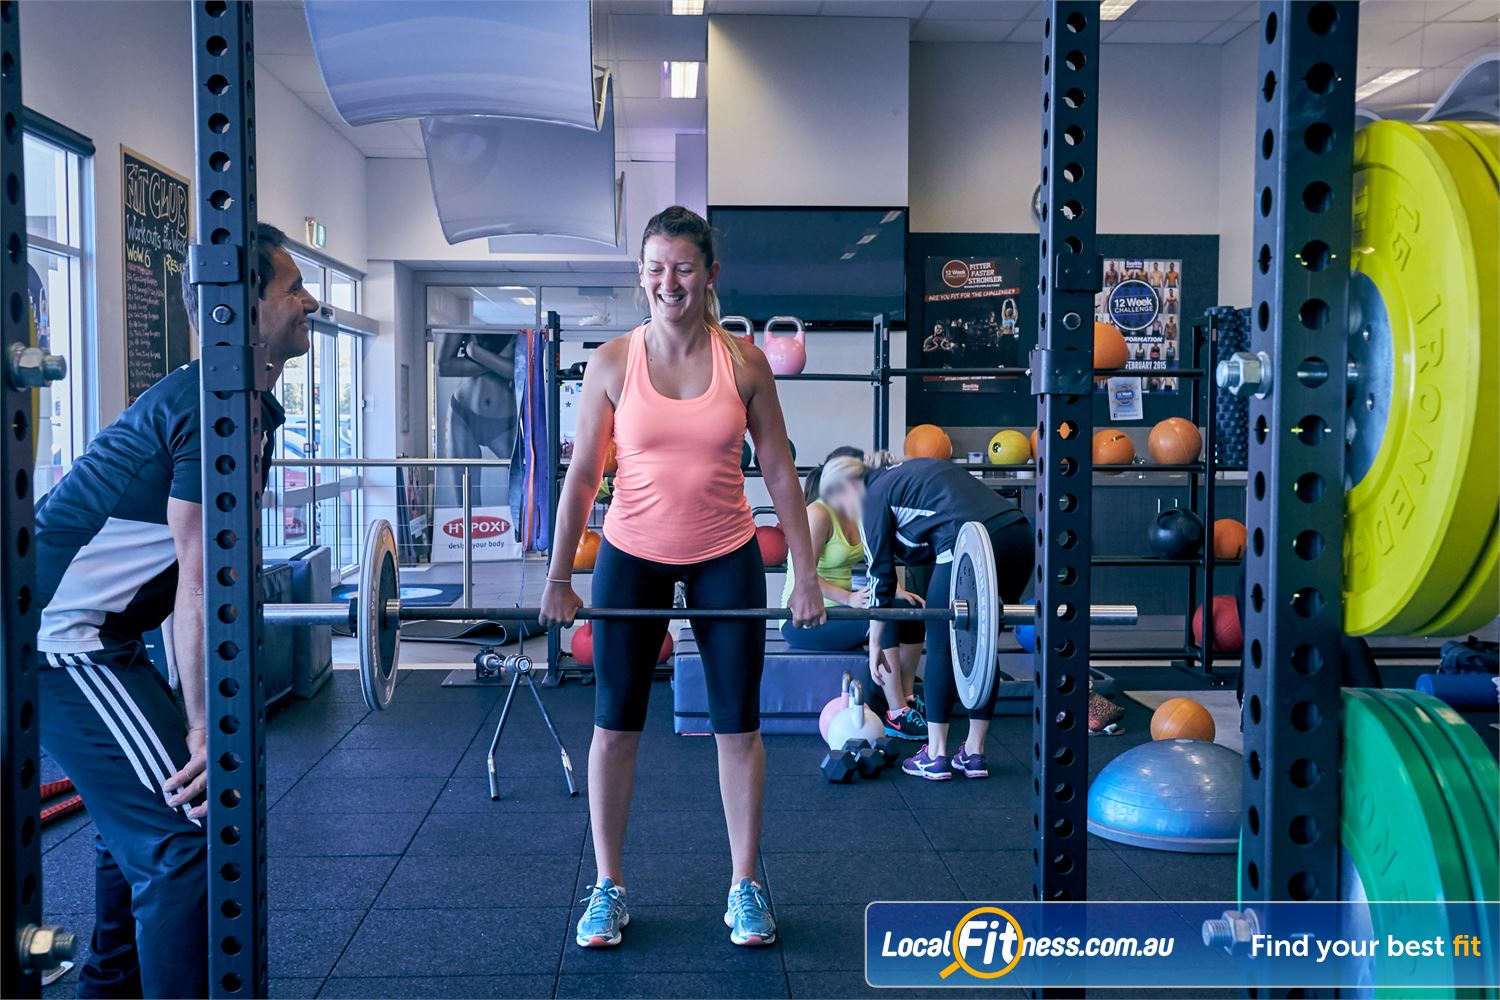 Goodlife Health Clubs Cross Roads Near Lower Mitcham Westbourne Park gym instructors can tailor a strength program to suit your goals.